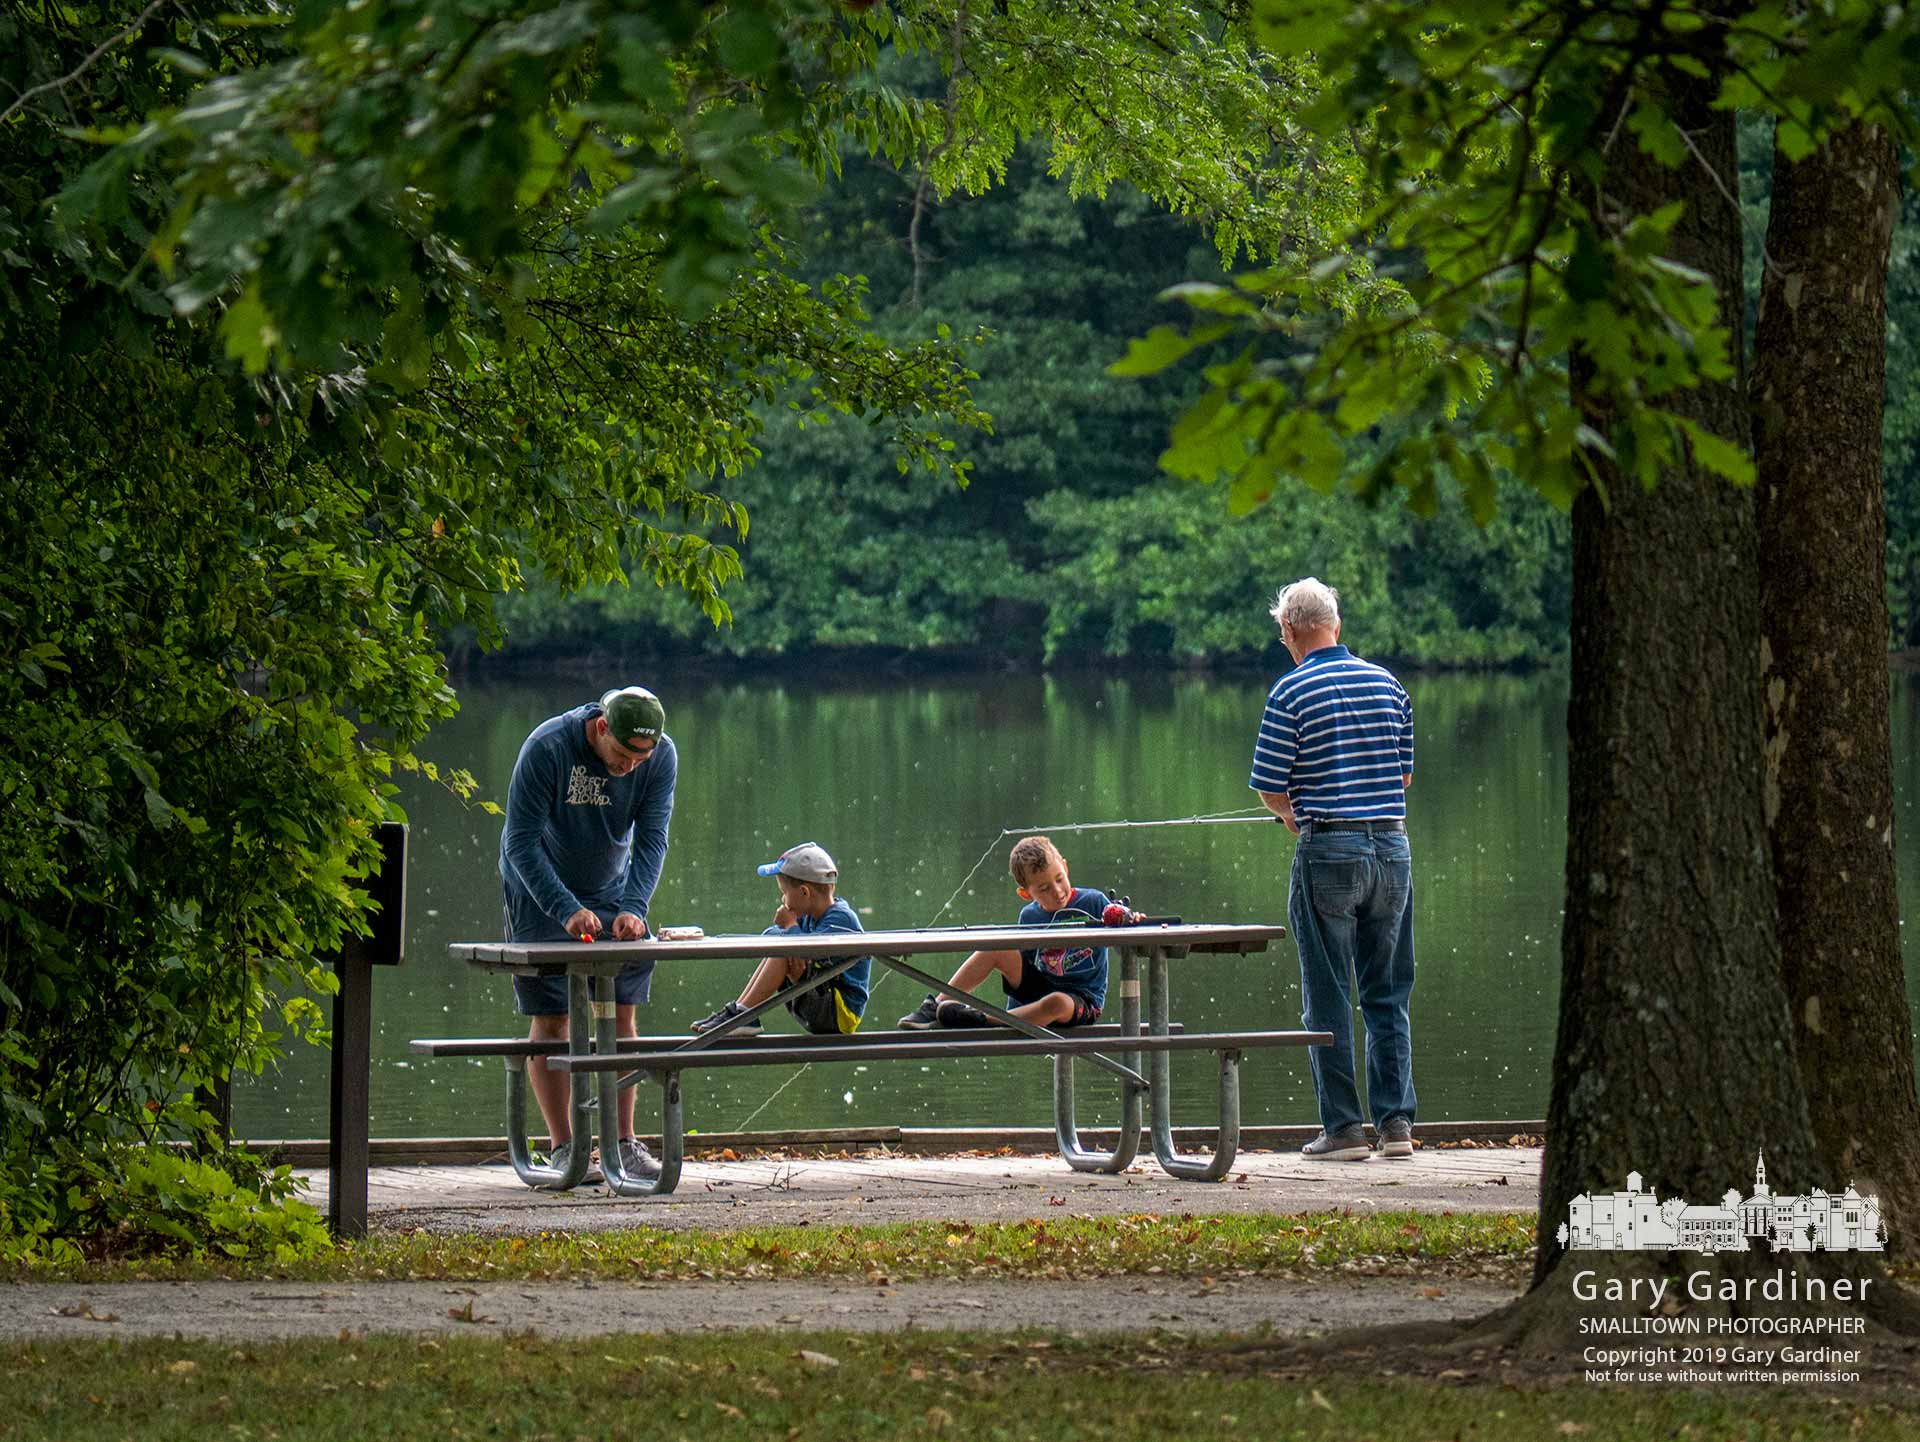 A grandfather, father, and two sons settle in for a morning of fishing at the pond in Sharon Woods Metro Park. My Final Photo for Aug. 10, 2019.